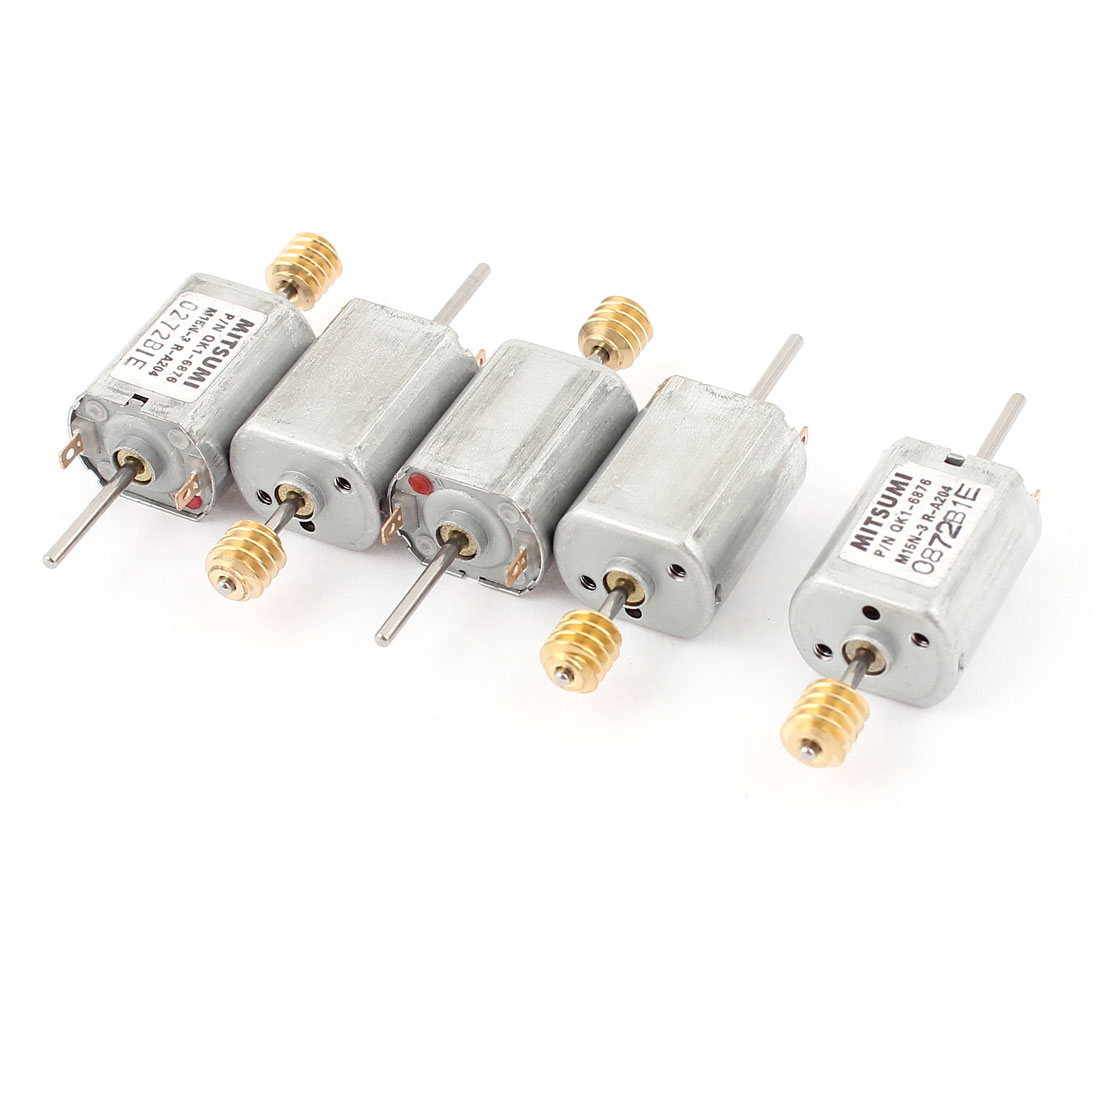 5pcs 12V 13500 RPM Speed 1.5mm Shaft Dual Axle Cylinder Micro Electric DC Worm Motor for DIY Toy